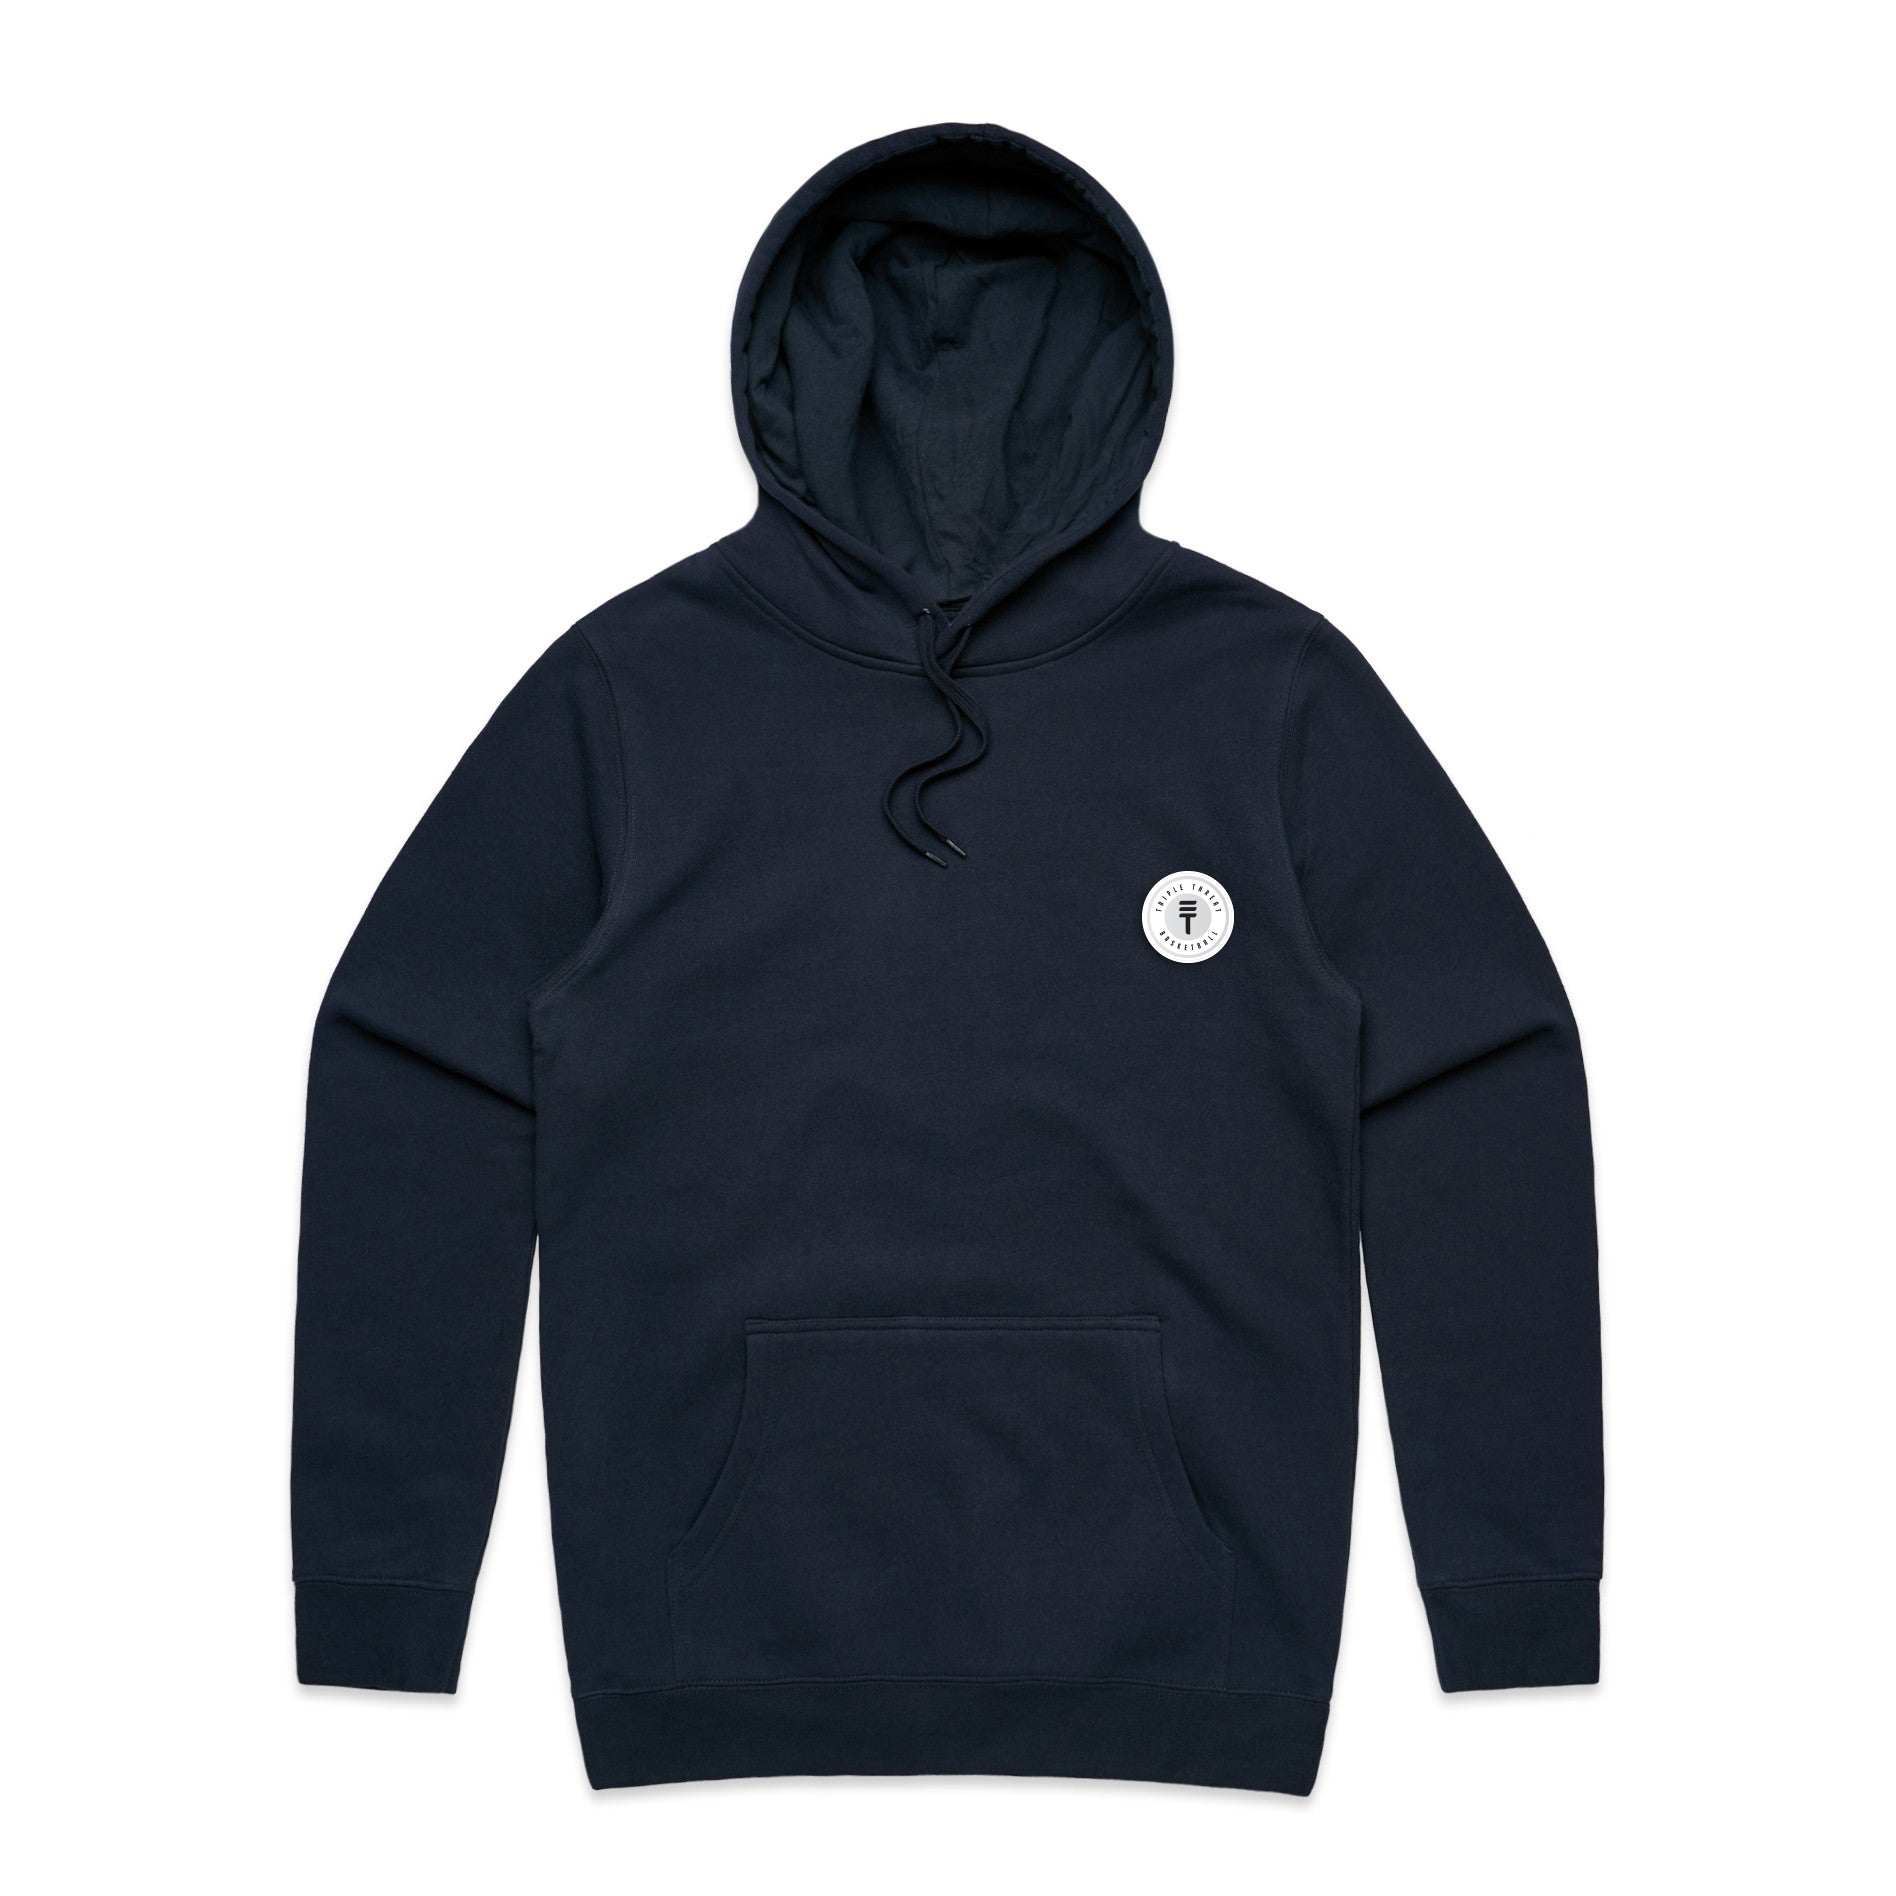 FUNDAMENTAL BADGE HOODIE - NAVY